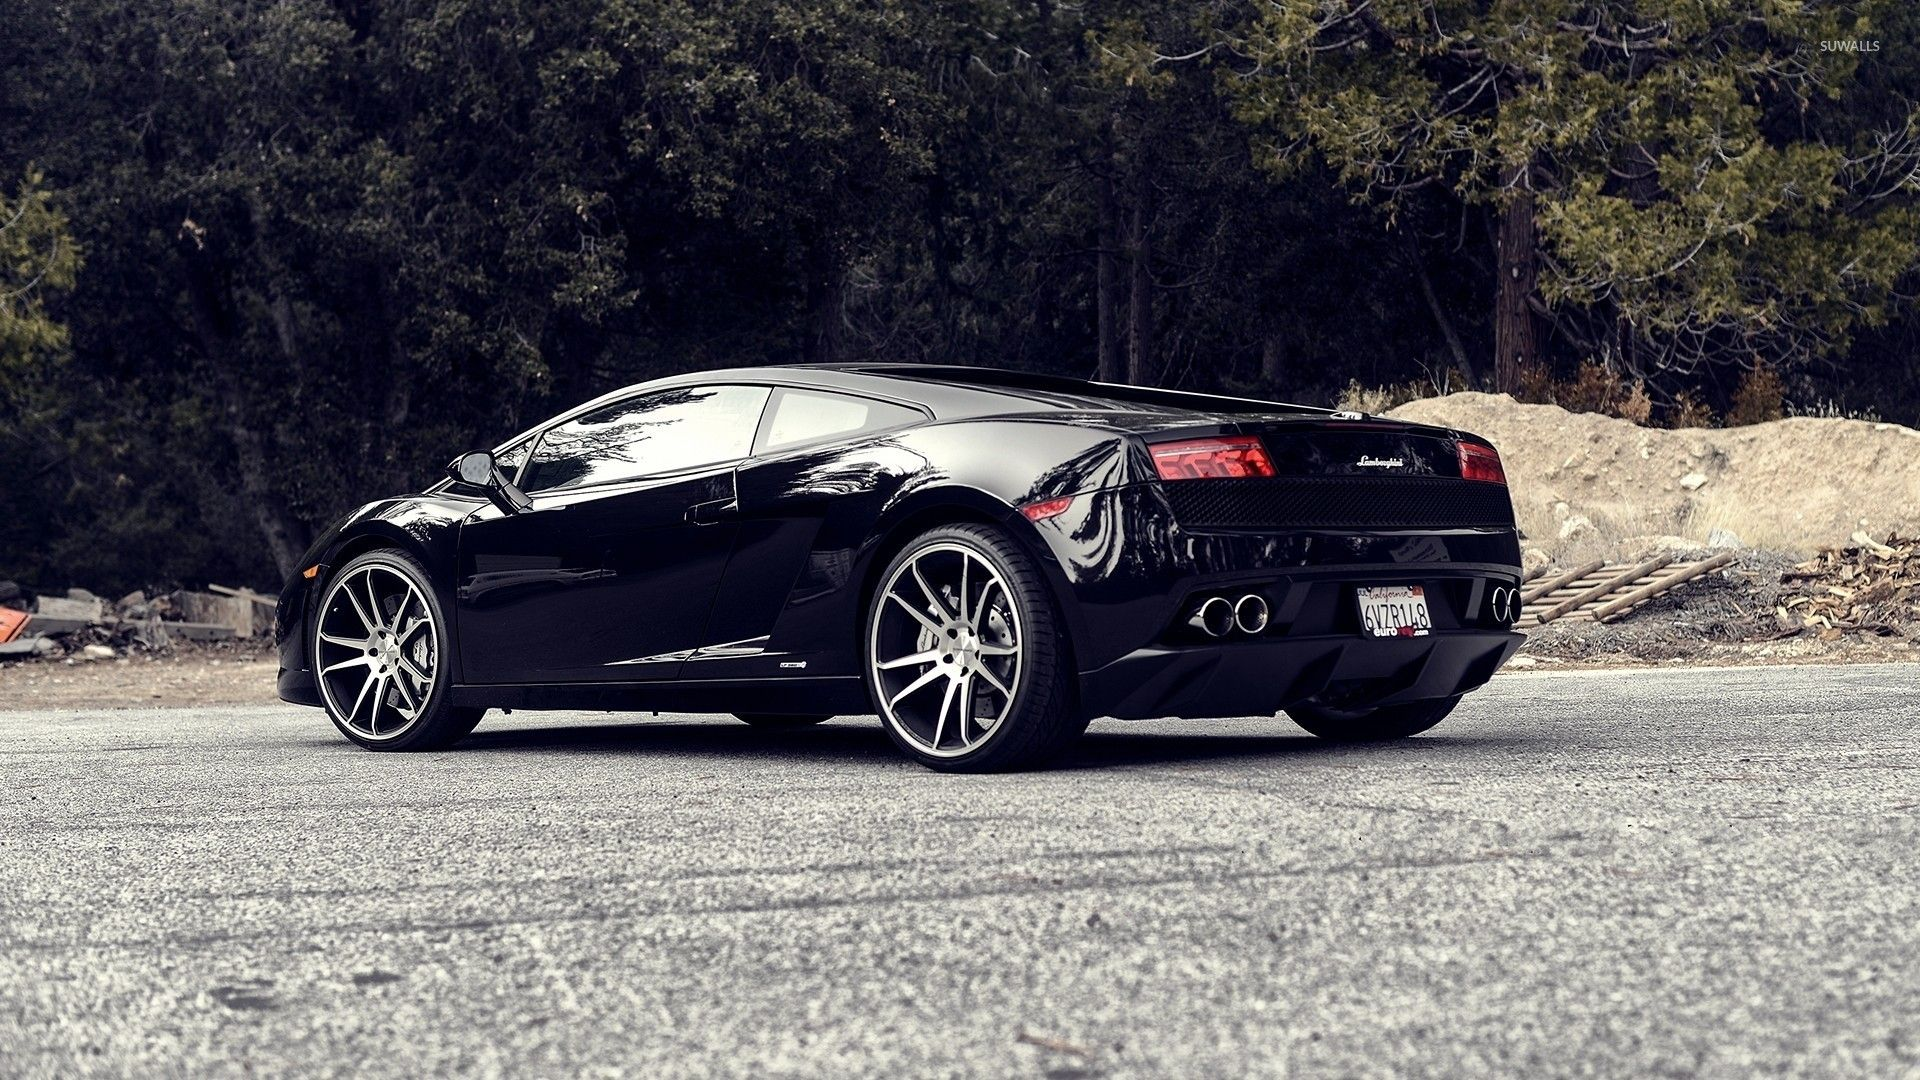 Back Side View Of A Black Lamborghini Gallardo Wallpaper Car